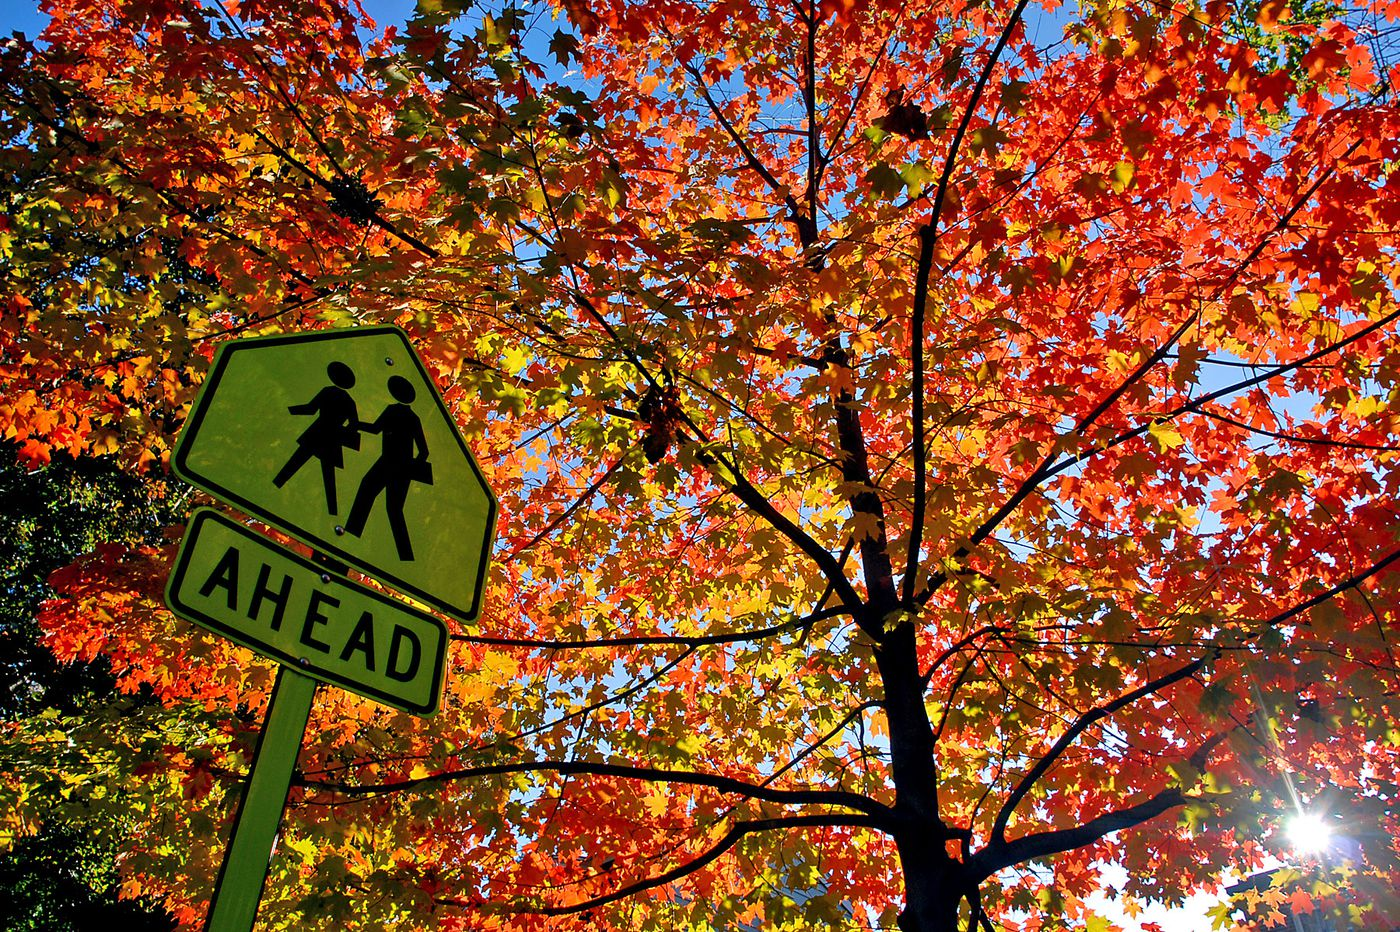 With autumn upon us, darker days and moods may be ahead. Here's what to do about it.